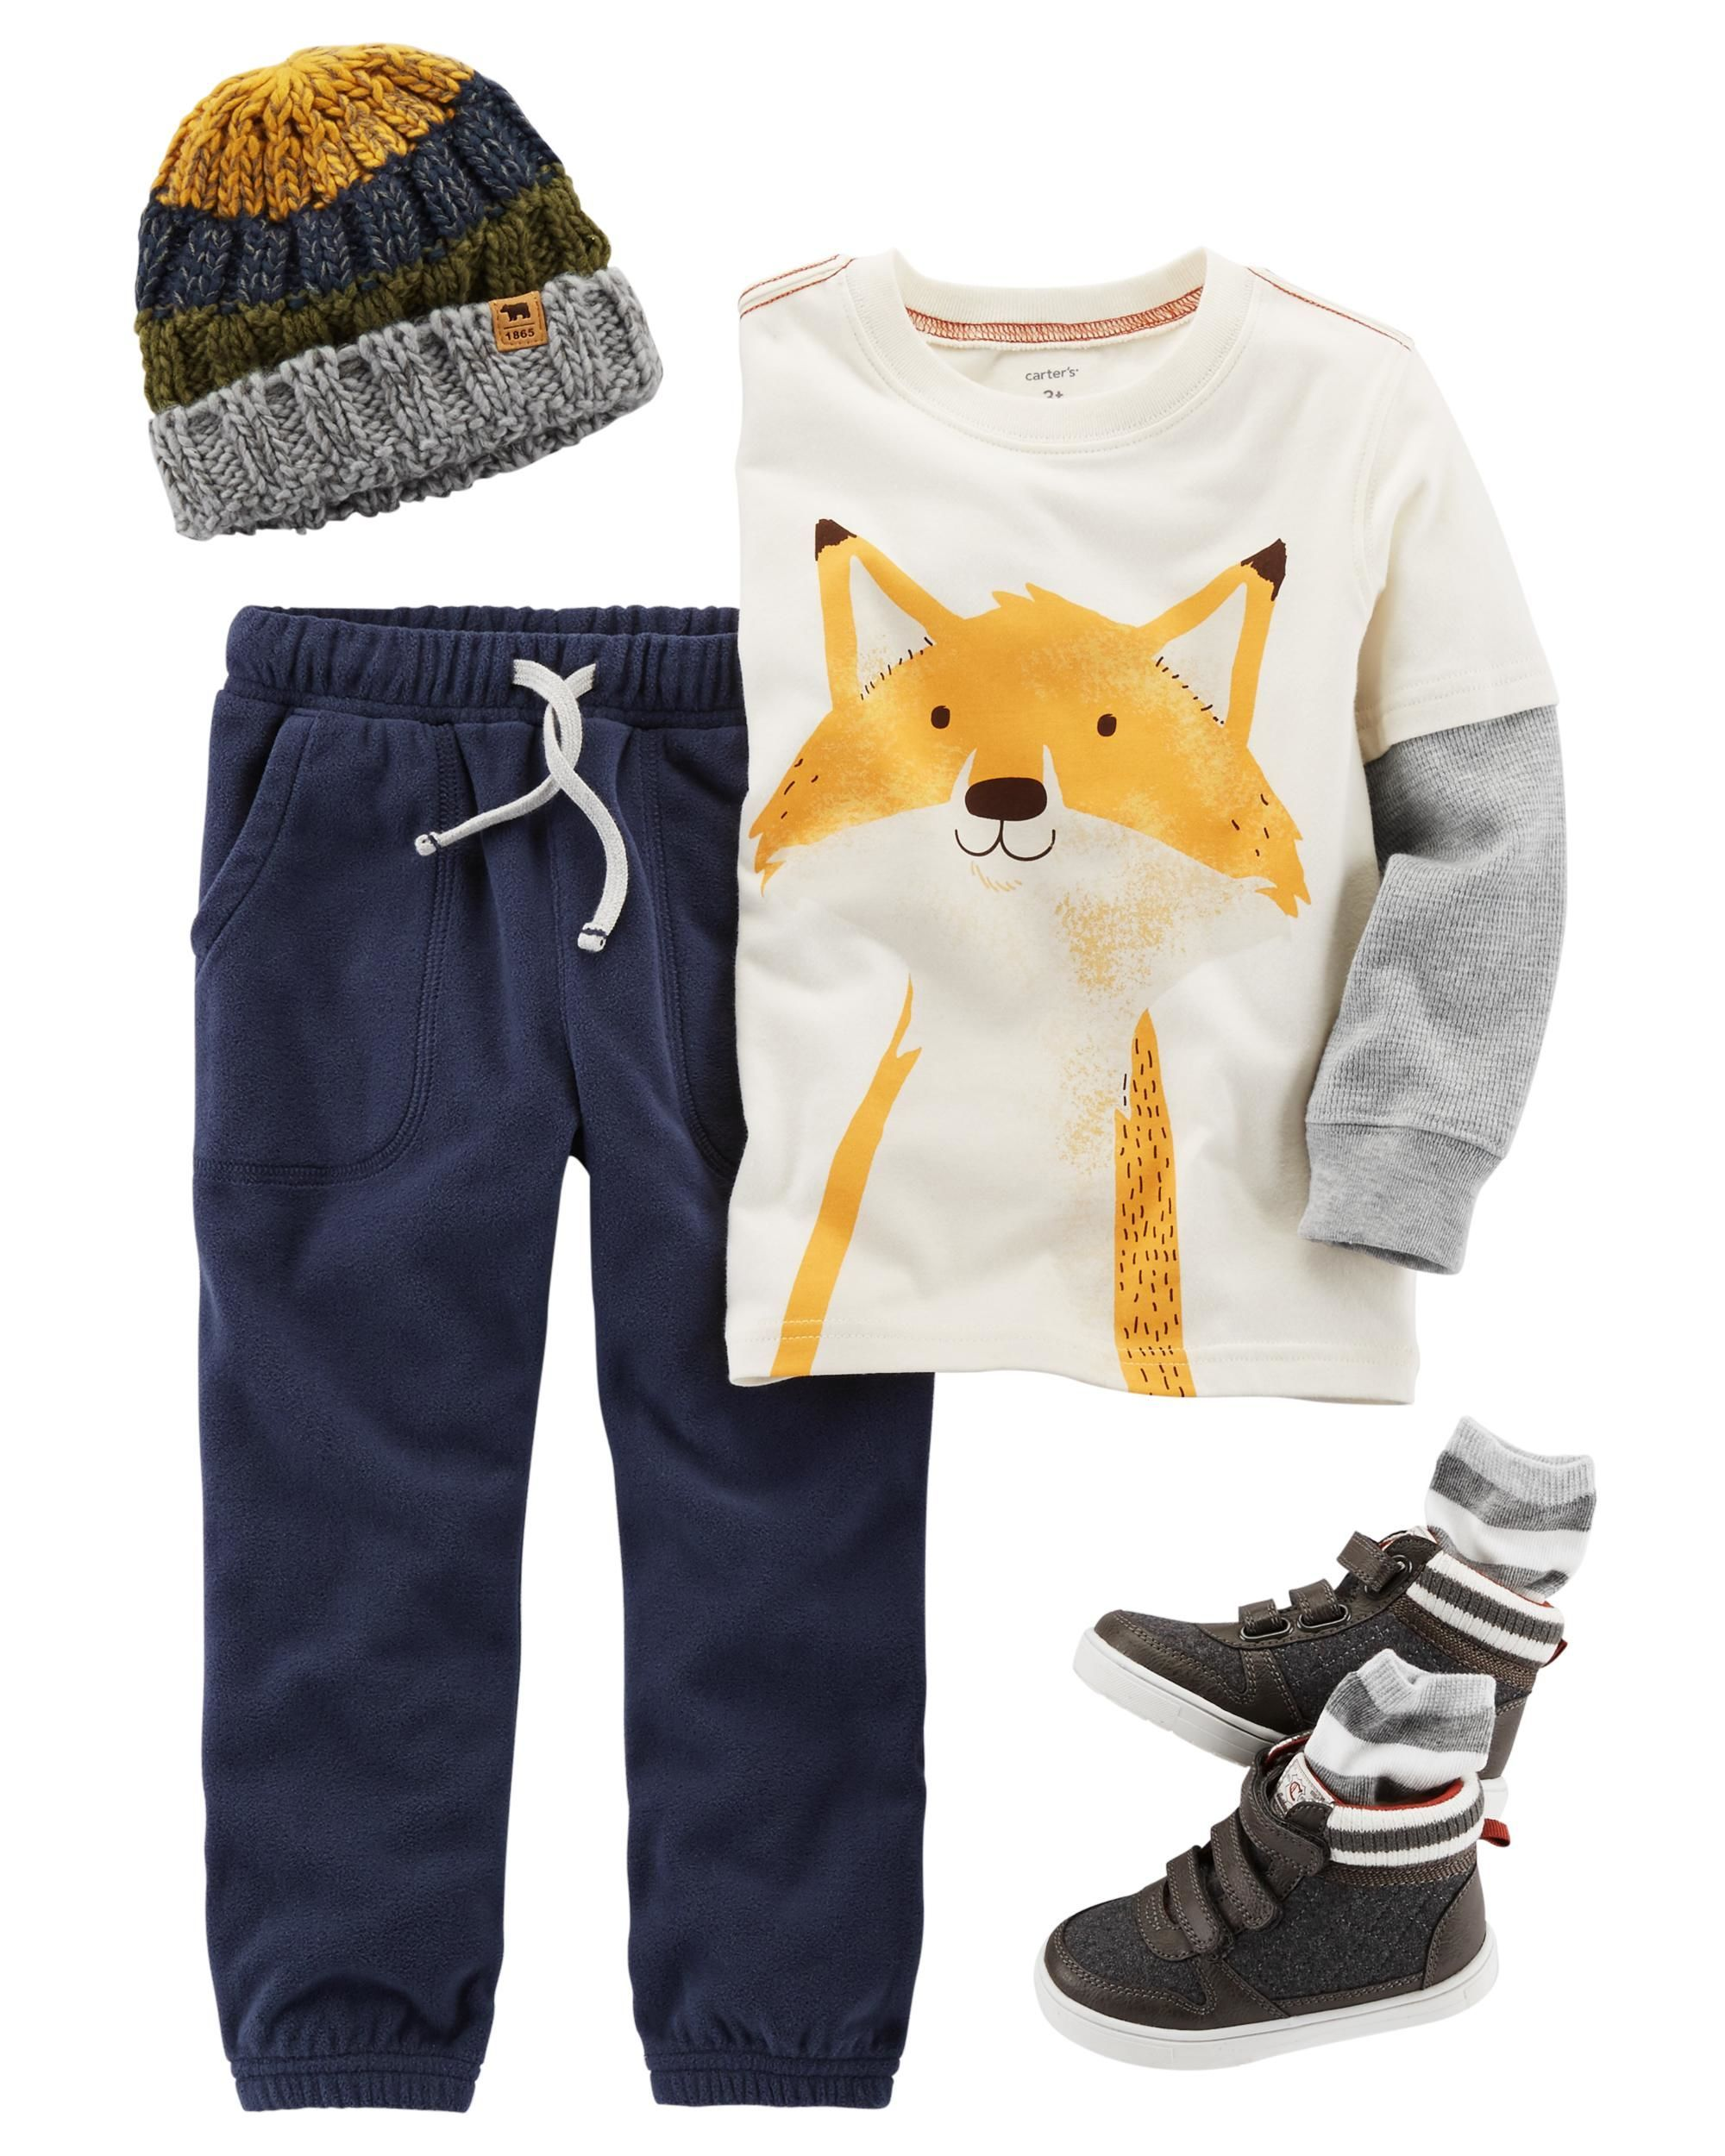 f0825e5793 The double-decker fox tee pairs with pull-on joggers for a cute and comfy  look. Add a pair of high-top sneakers and a coordinating knit hat to  complete this ...